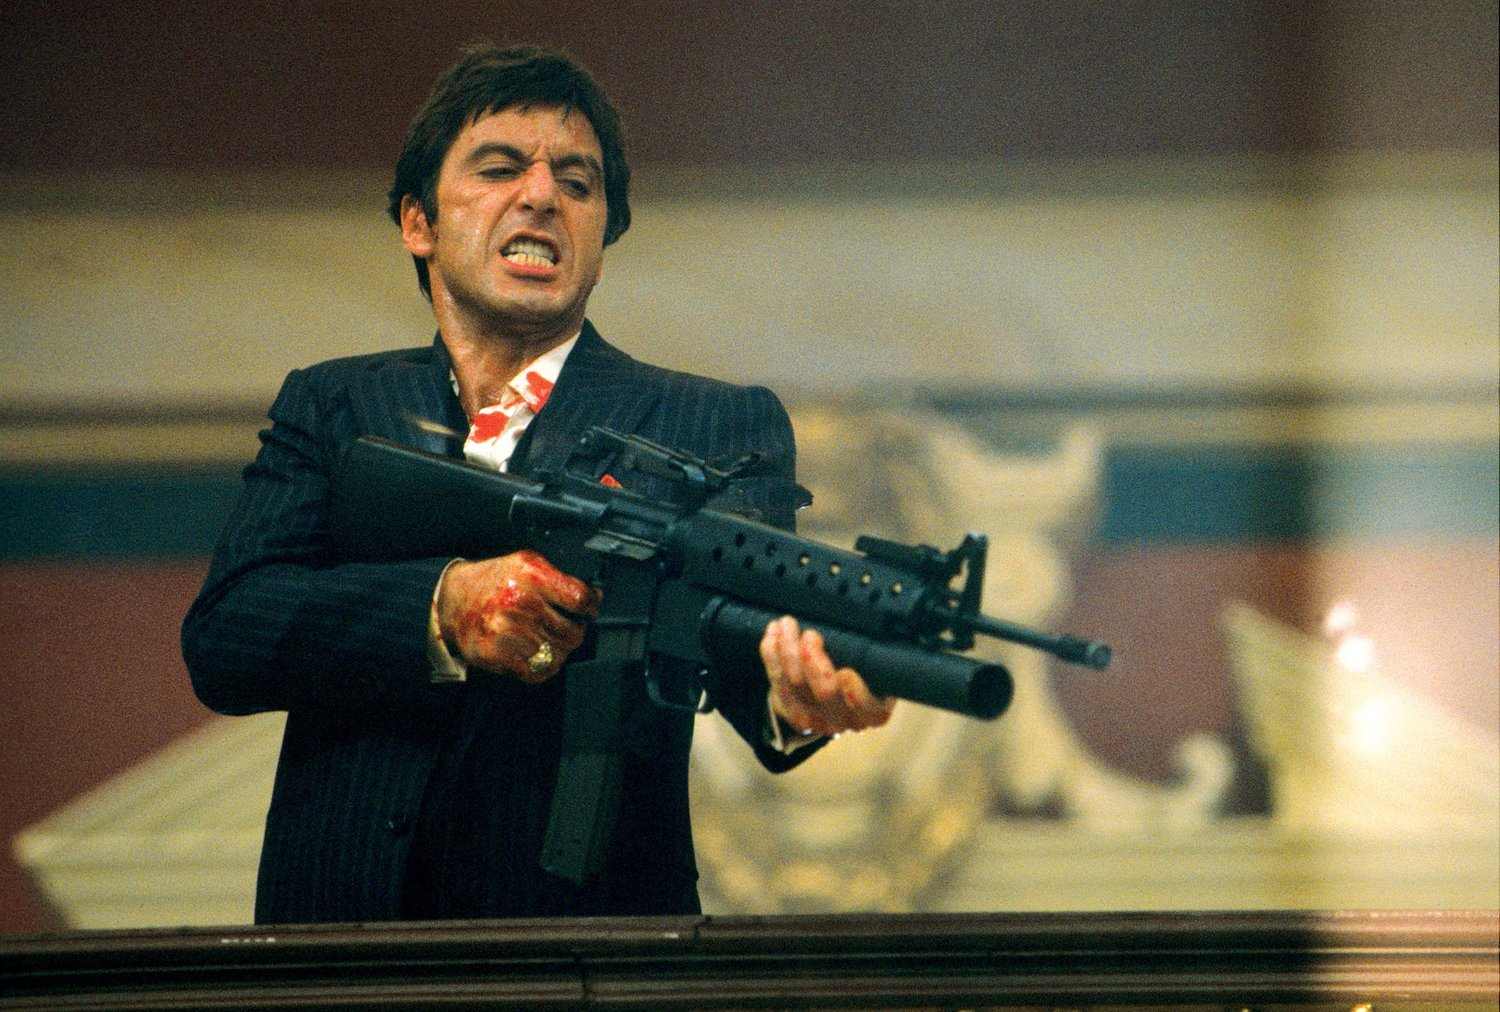 Al Pacino as Tony Montana in Scarface